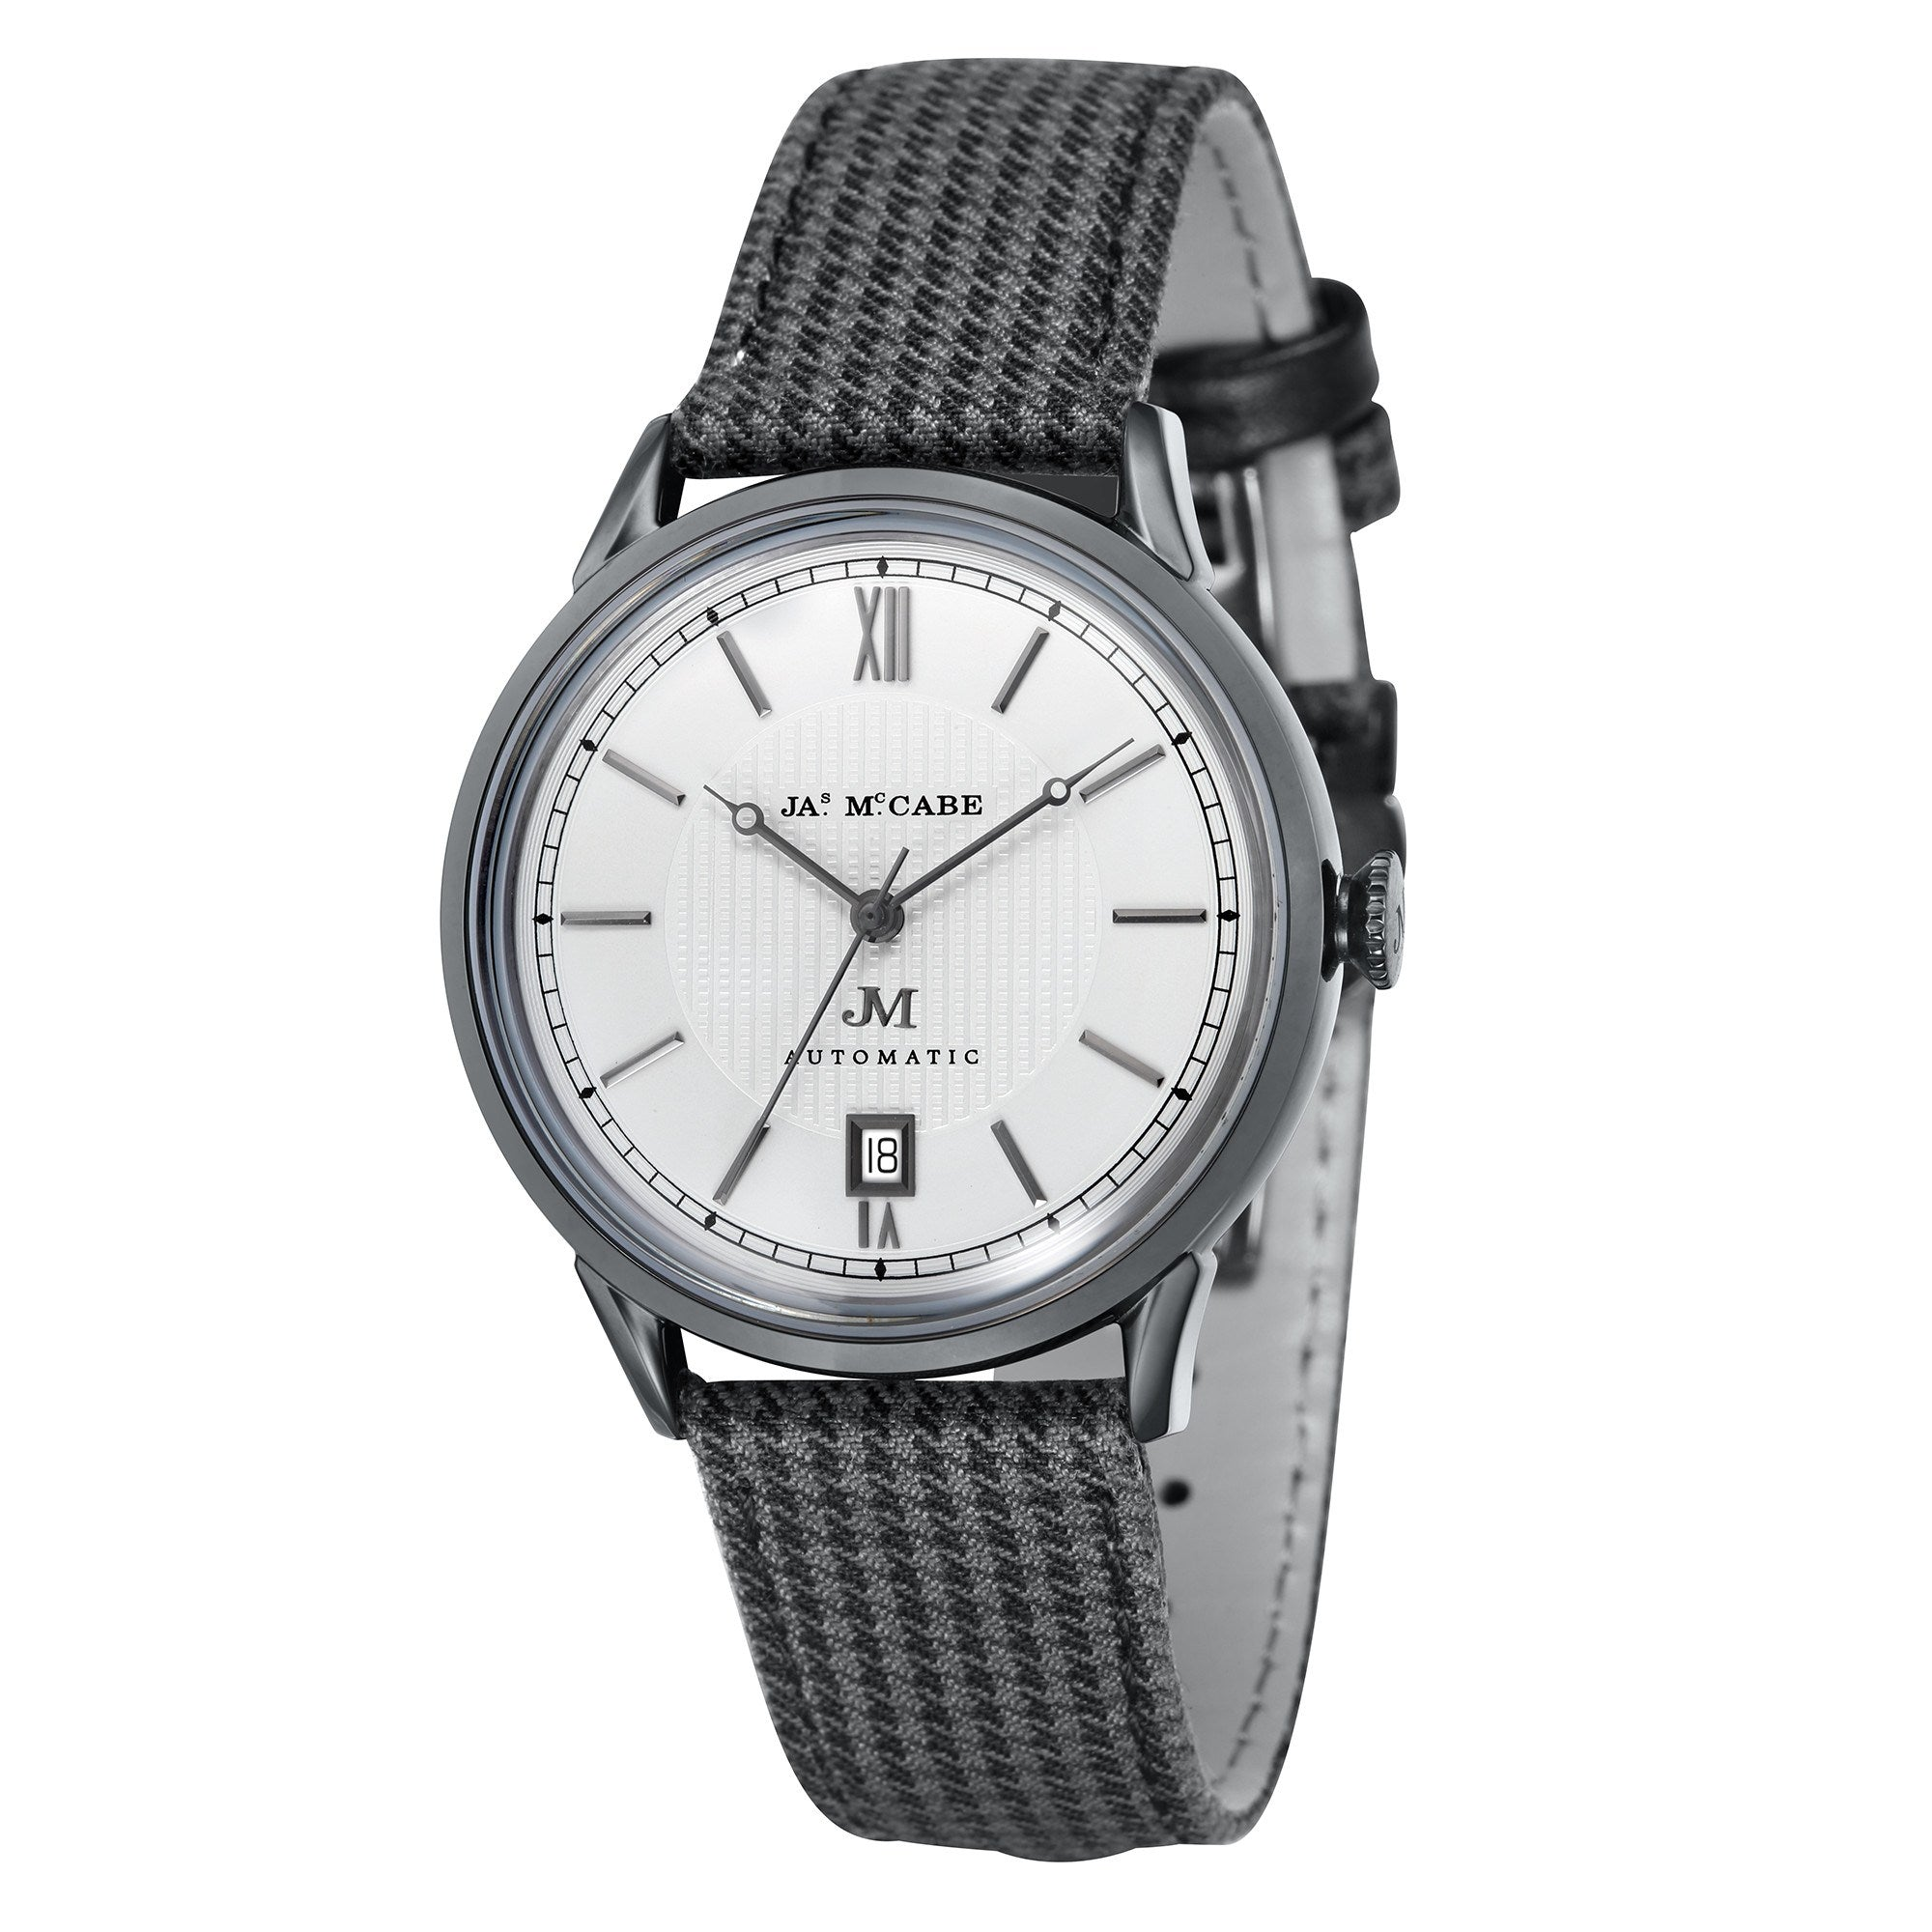 James McCabe Men's JM-1022-06 Heritage II Gunmetal Automatic Watch with Grey Canvas Strap